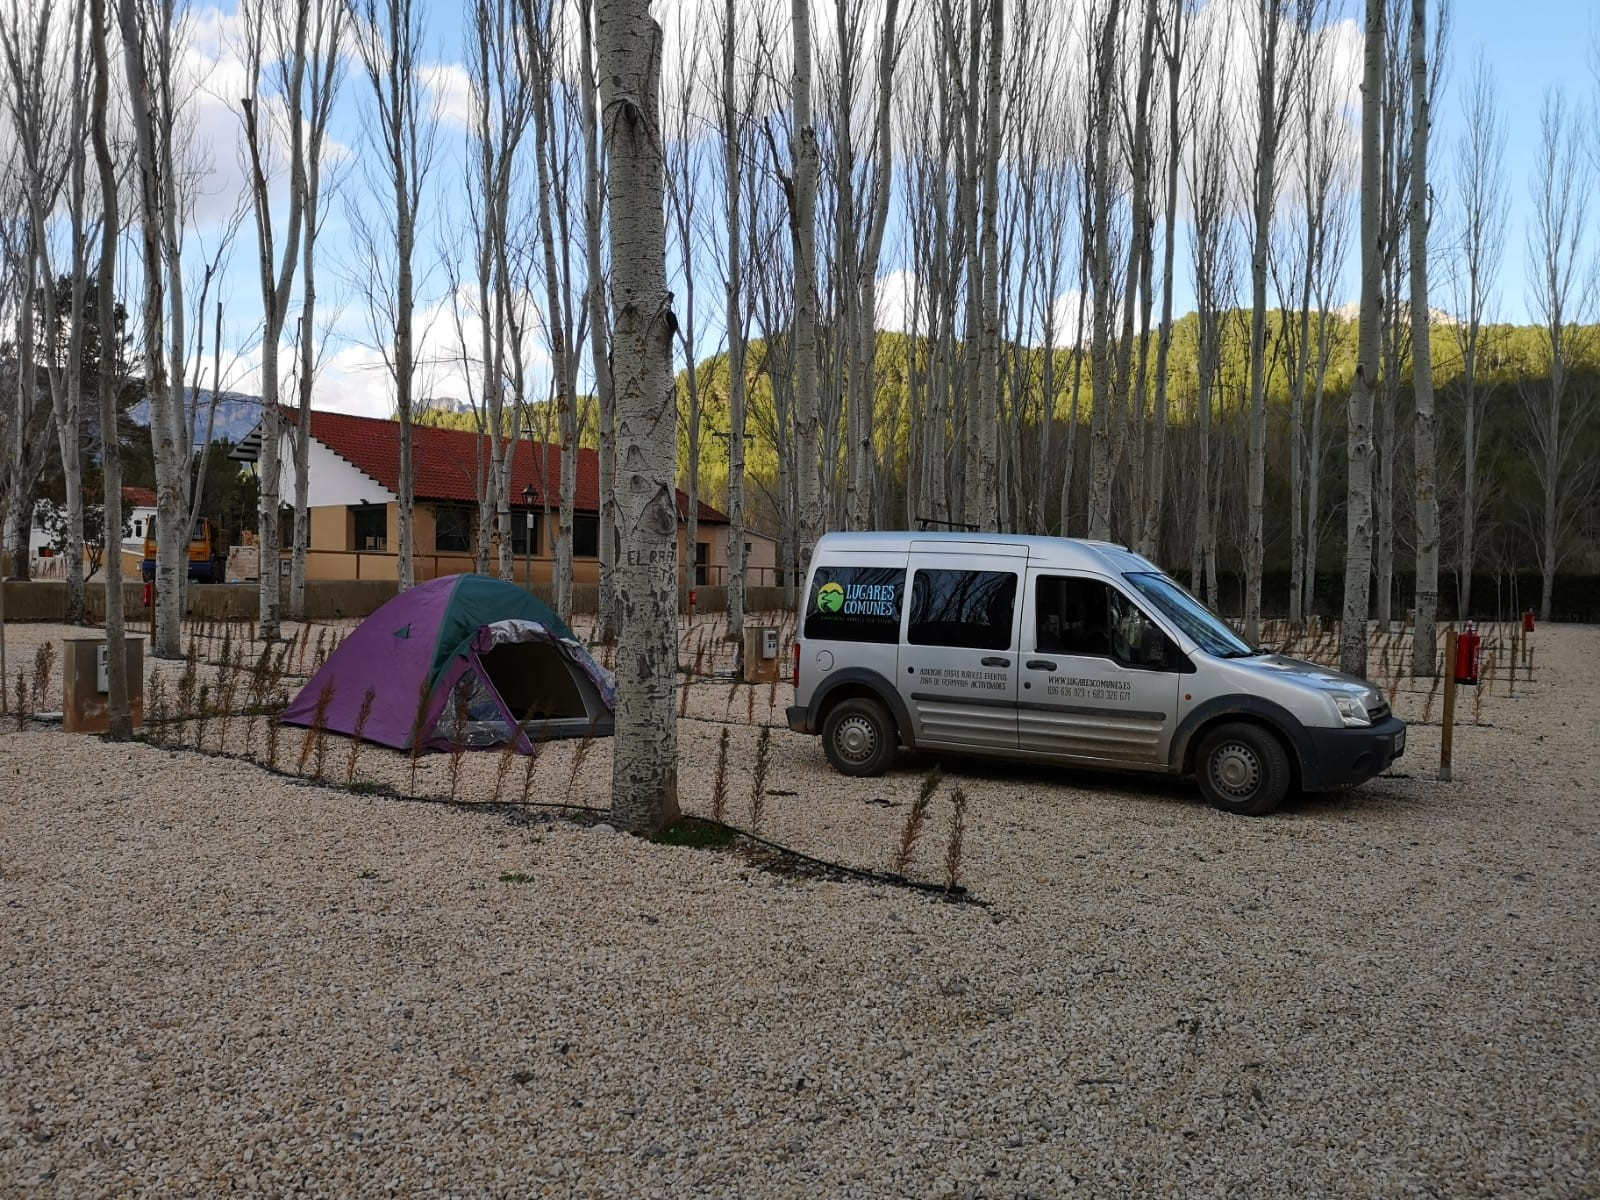 camping-rio-tus-parcela-eco-yeste-albacete-1